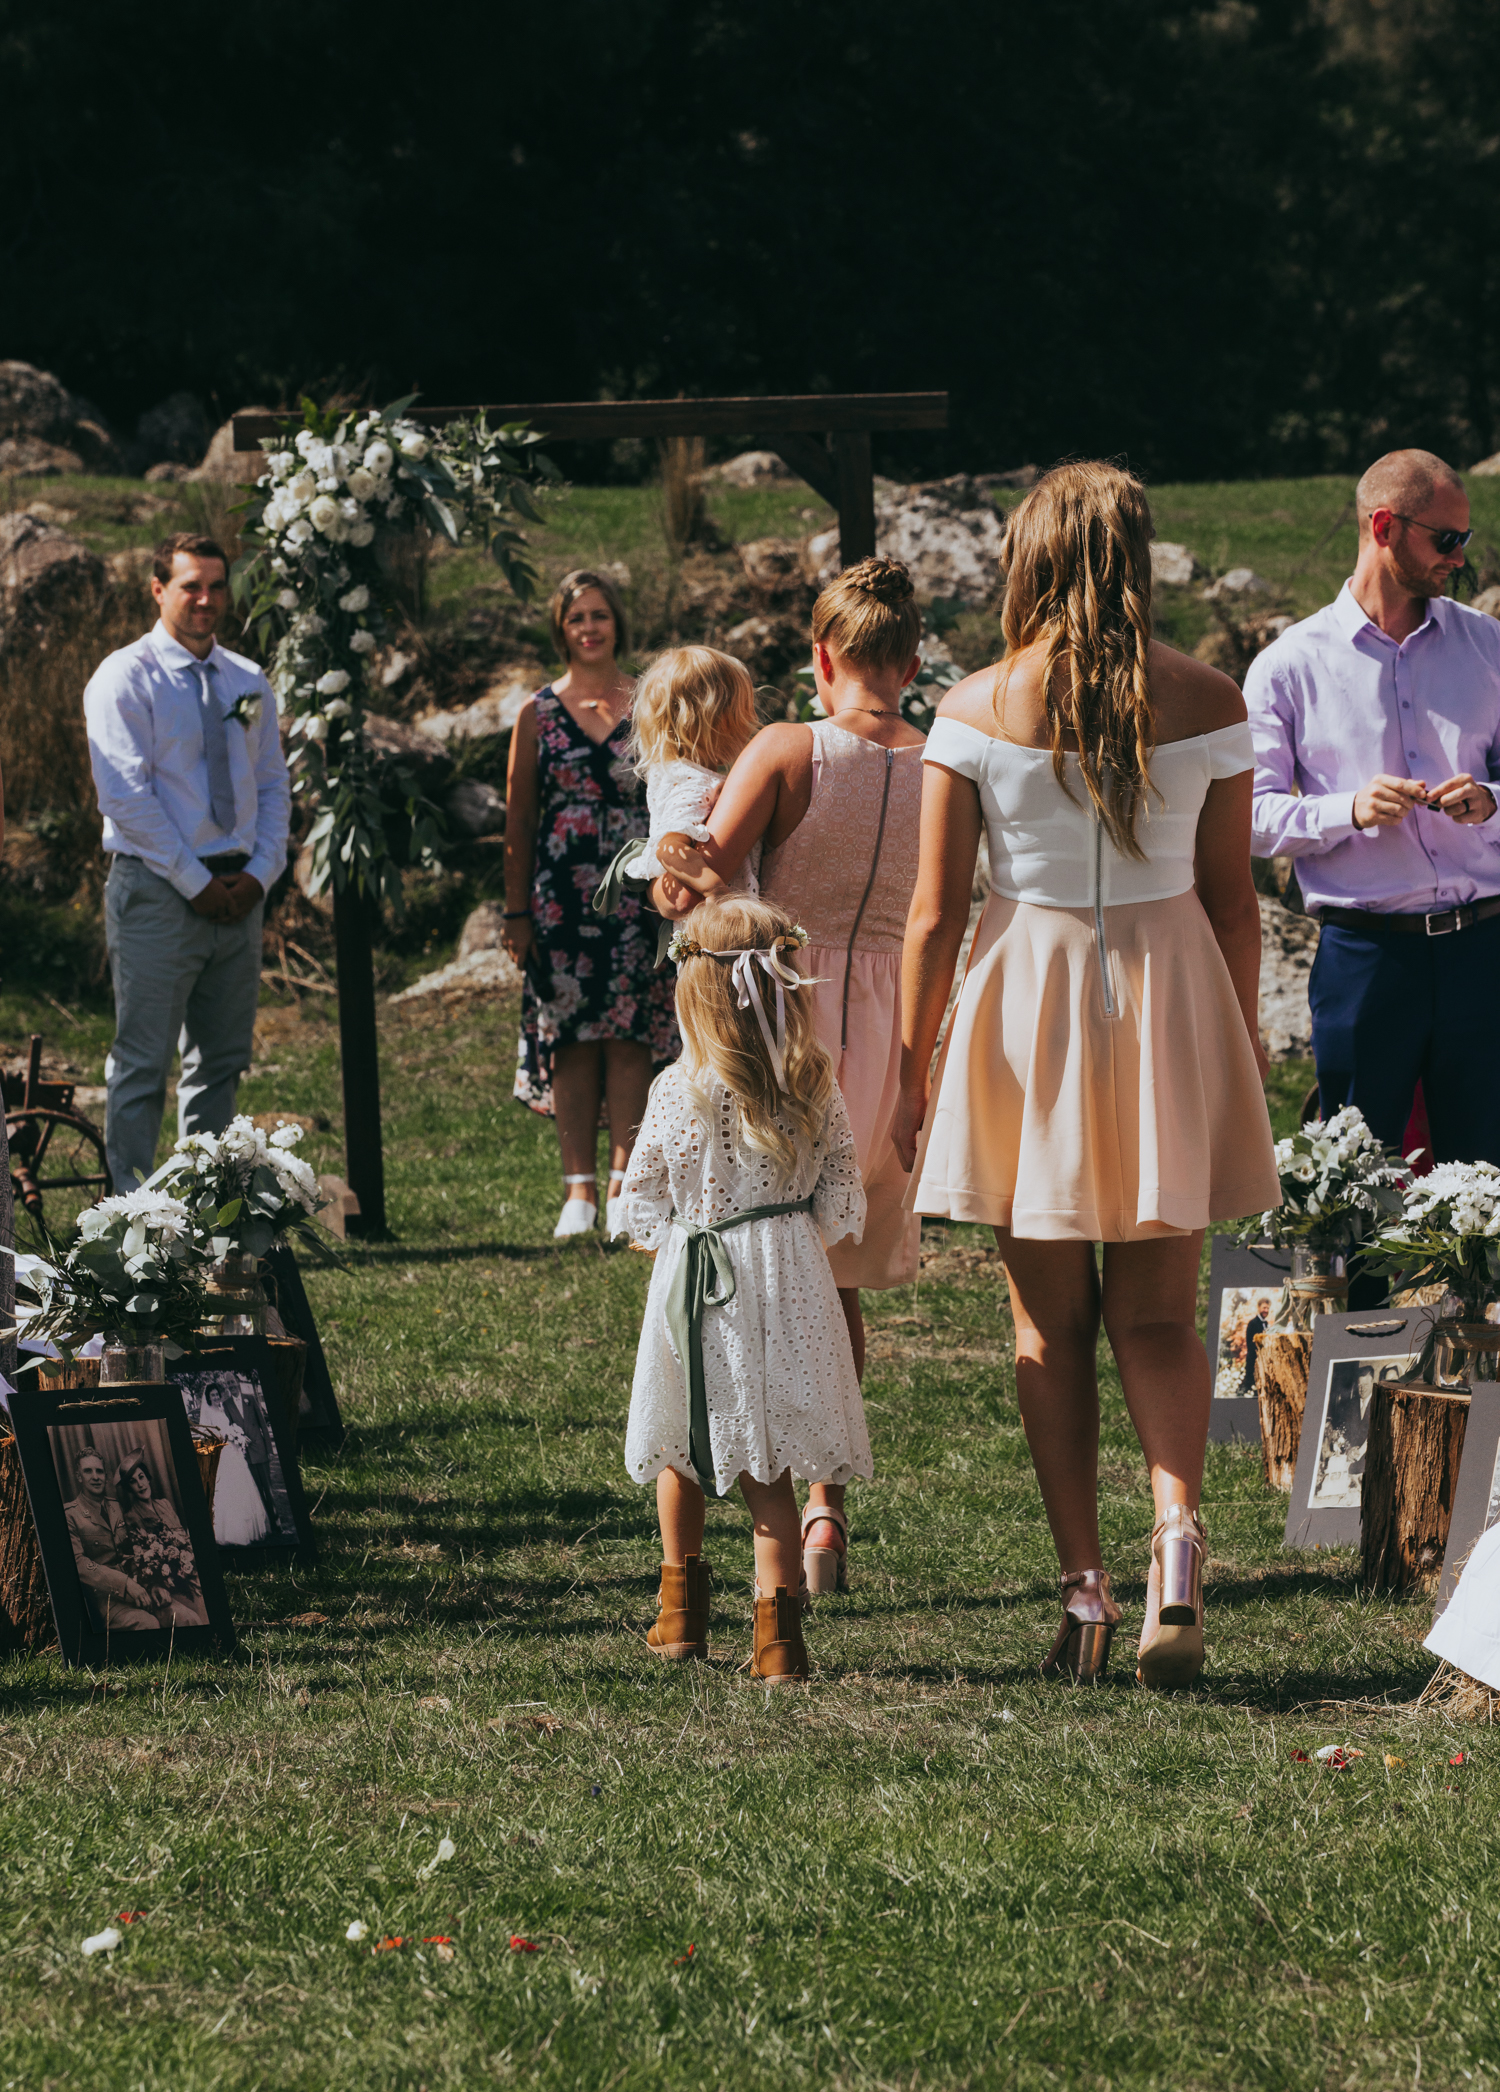 waikato-new-zealand-wedding-photographer-summer-rural-wedding-grace-loves-lace-dress-flower-girls.jpg